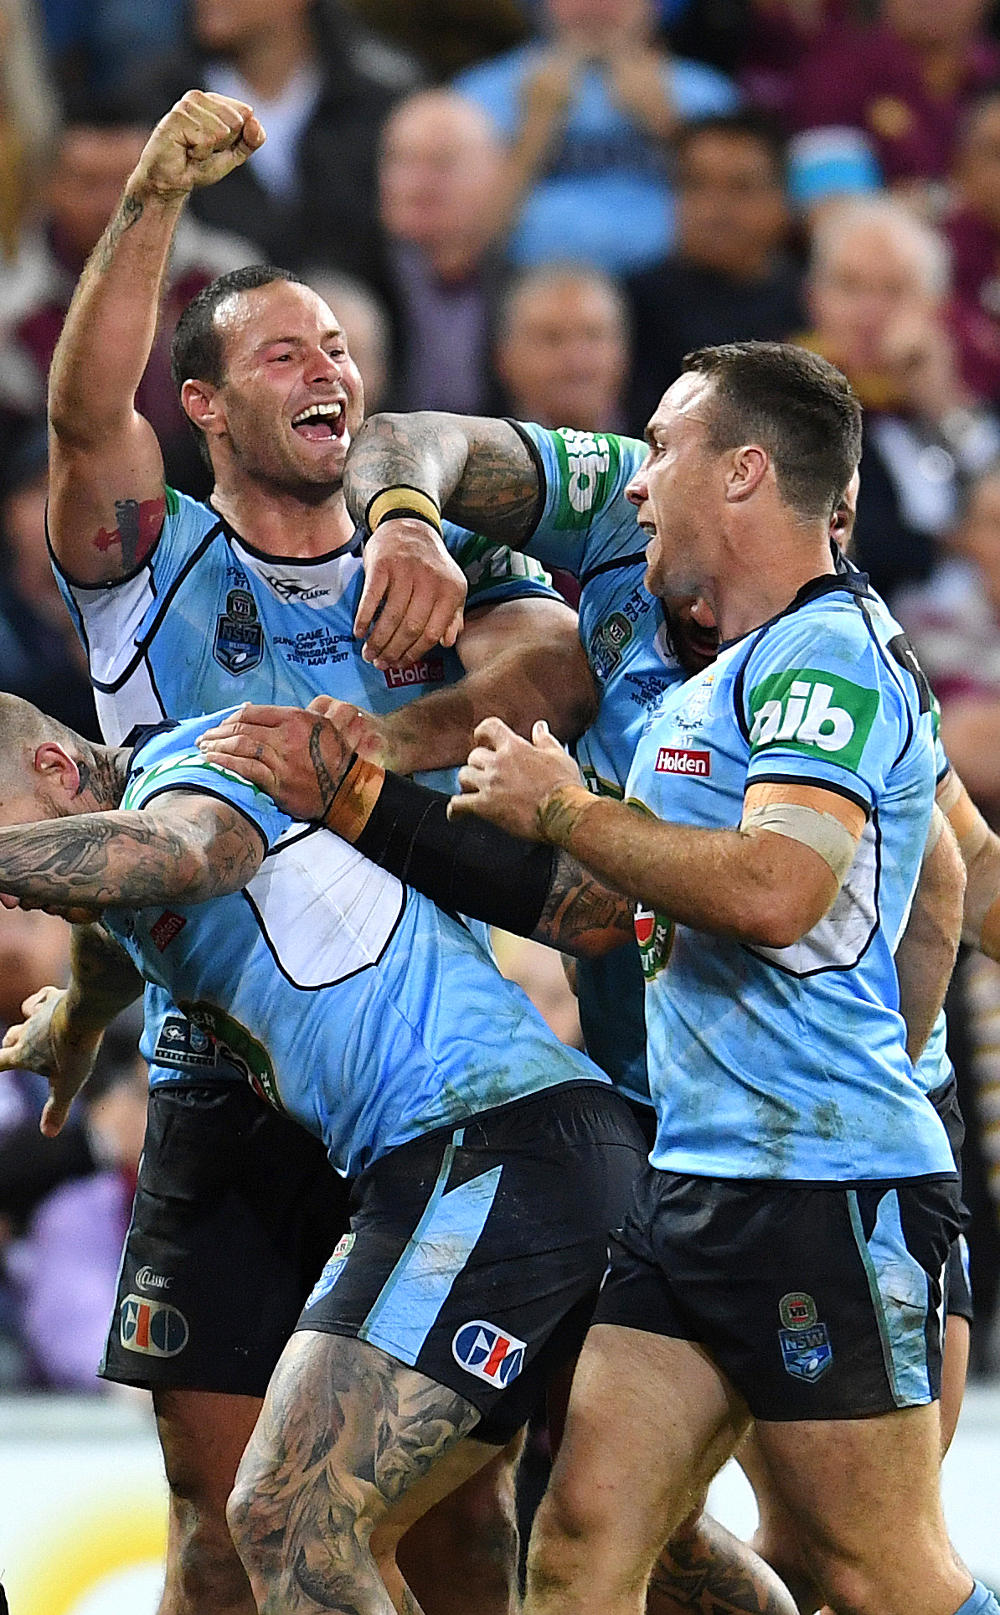 Boyd Cordner NSW Blues State of Origin NRL Rugby League 2017 tall